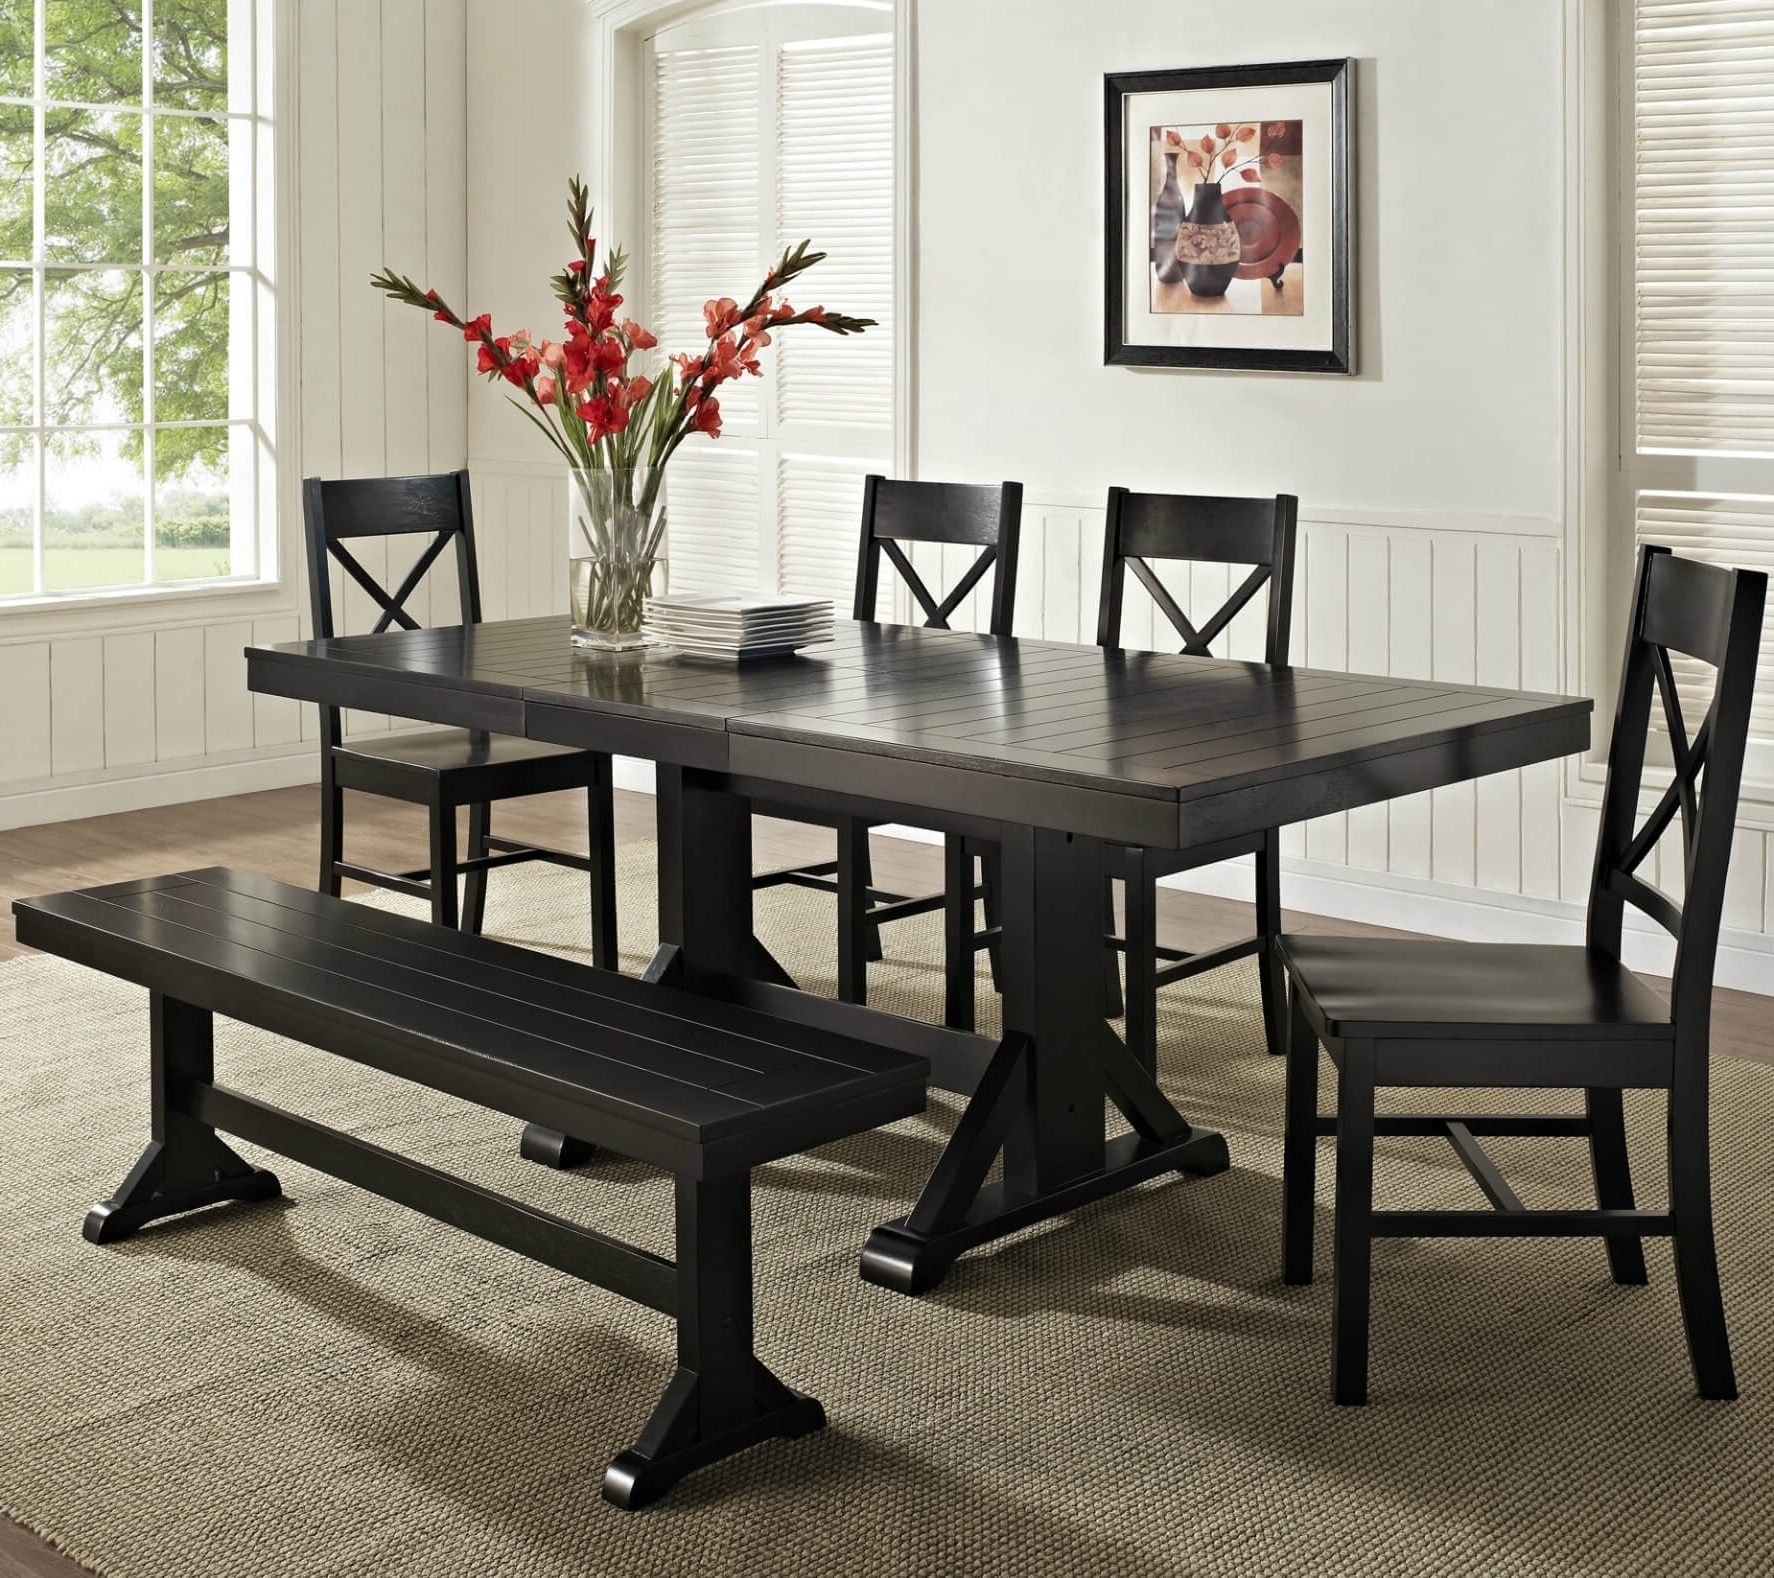 Small Dining Tables And Bench Sets With Regard To Recent 26 Dining Room Sets (Big And Small) With Bench Seating (2018) (View 13 of 25)